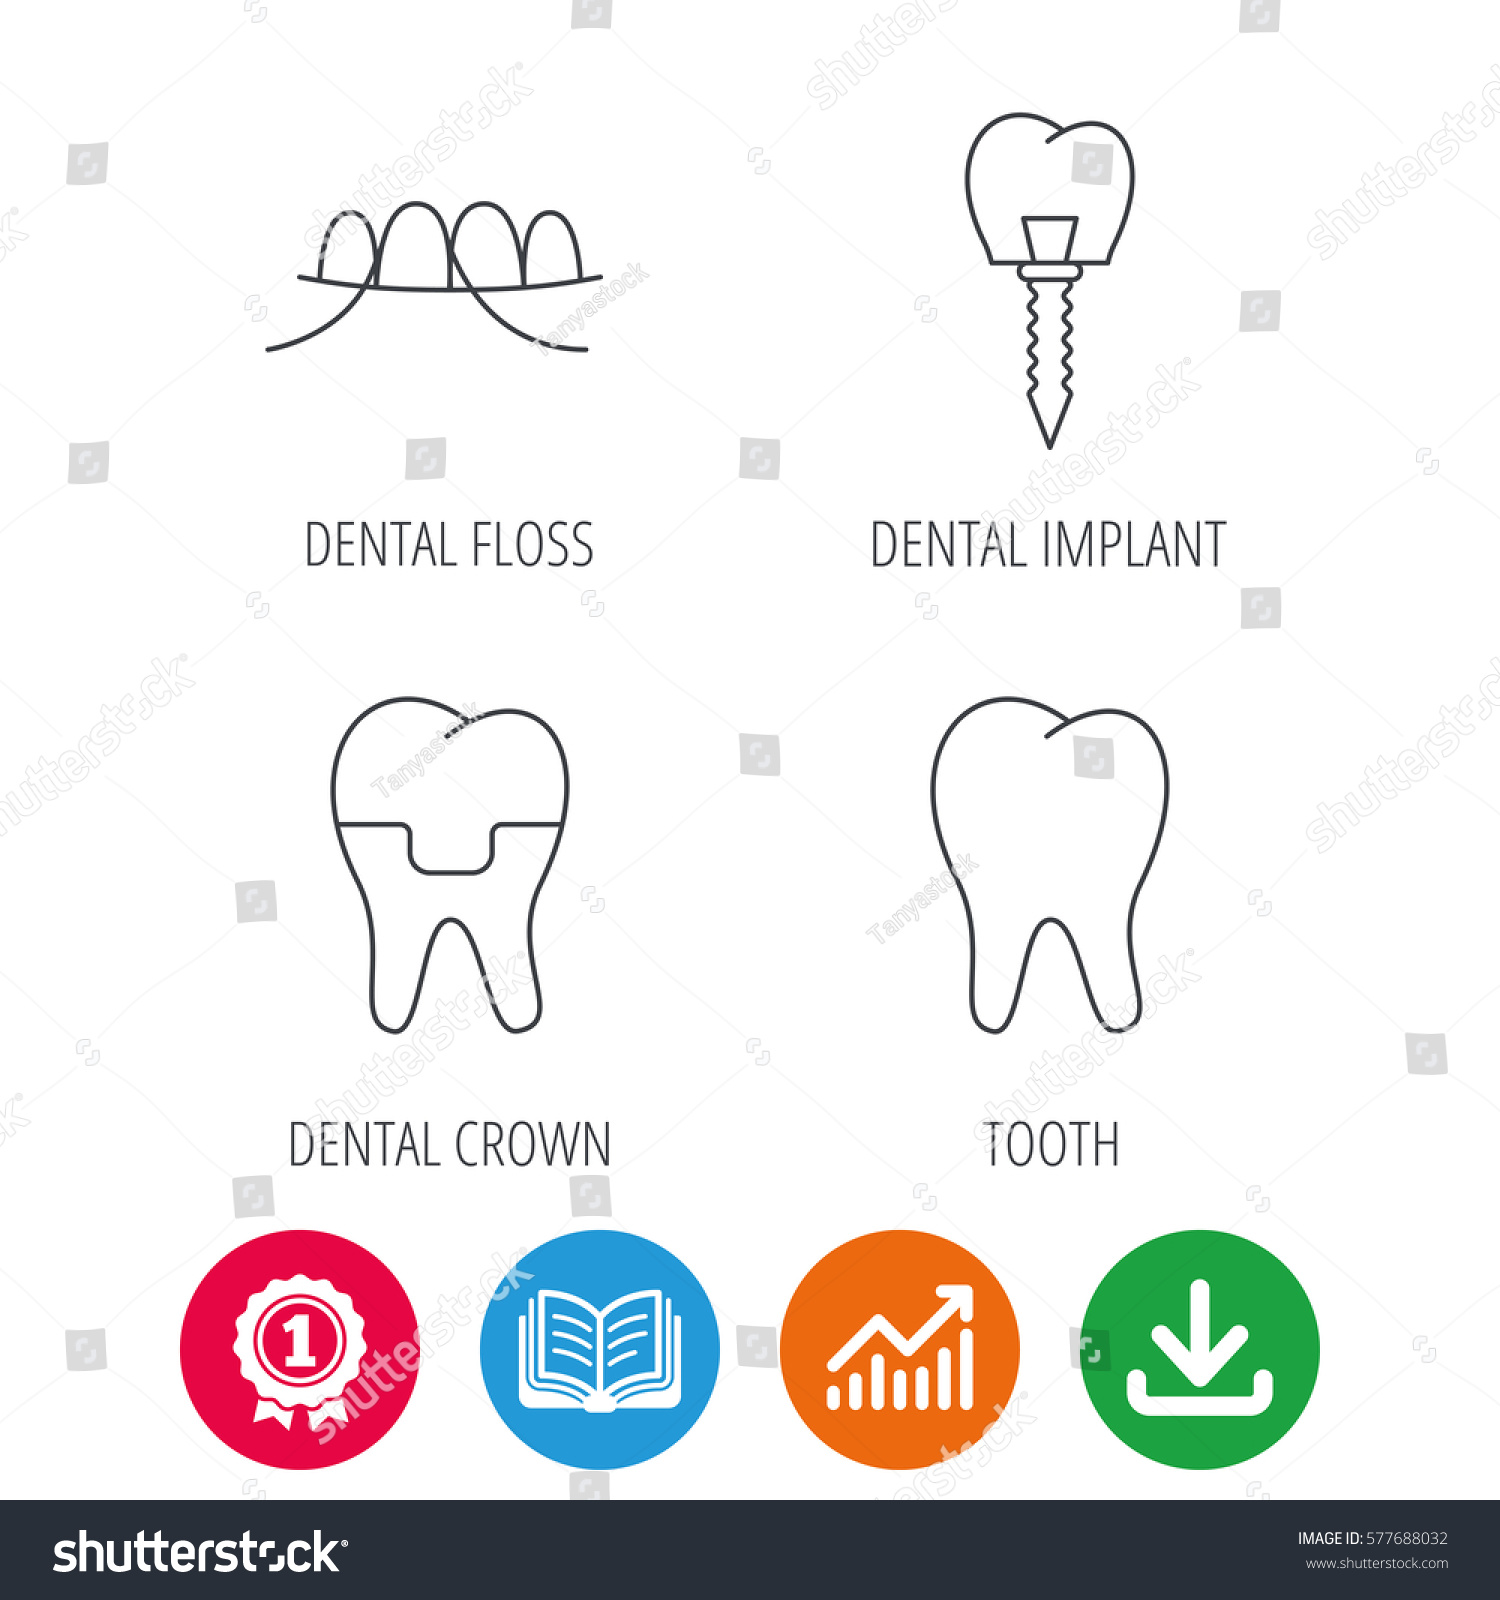 Dental Implant Floss Tooth Icons Dental Stock Vector 577688032